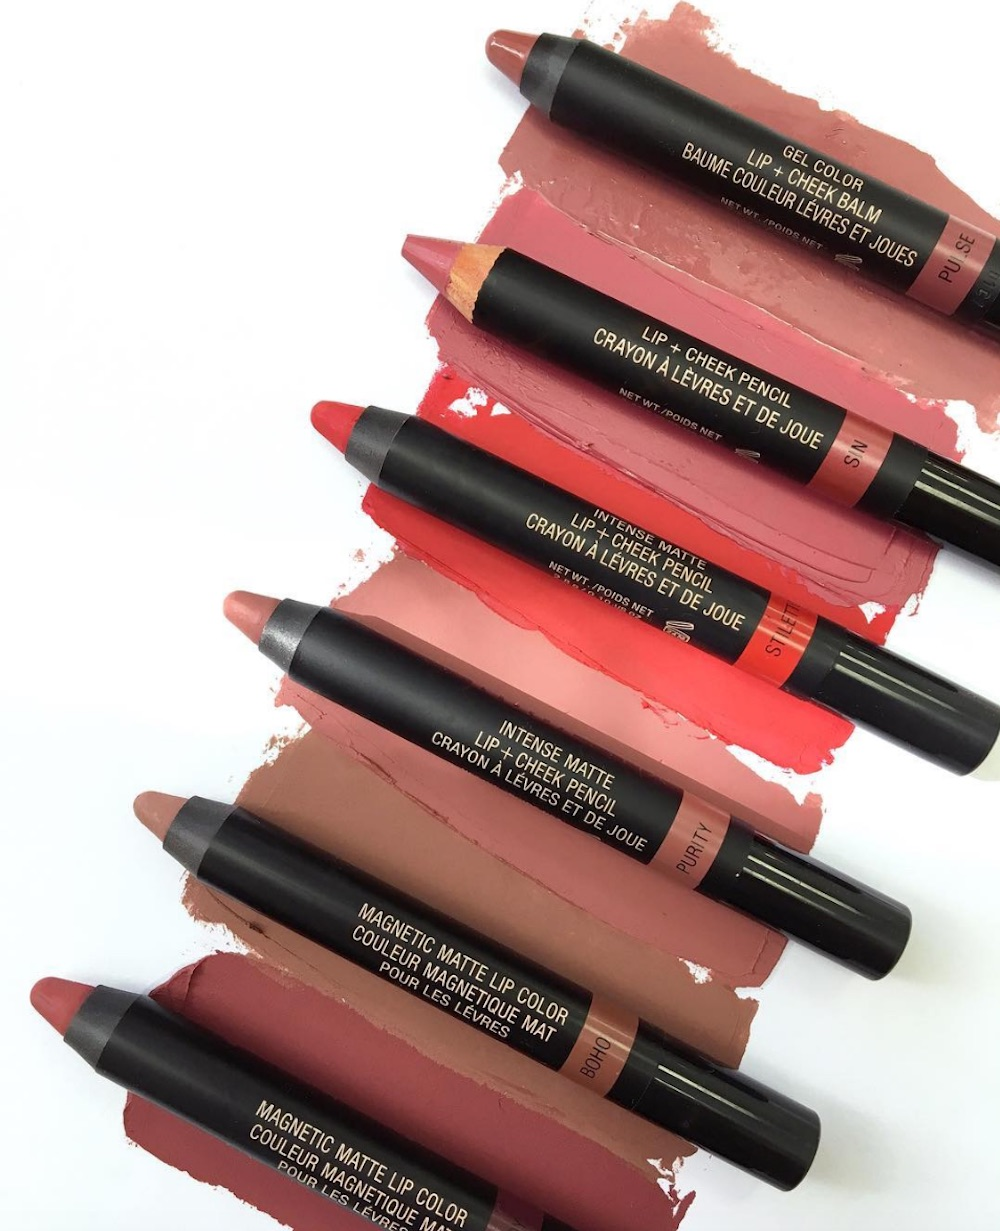 Nudestix joined forces with these five beauty influencers to create the ultimate lip set